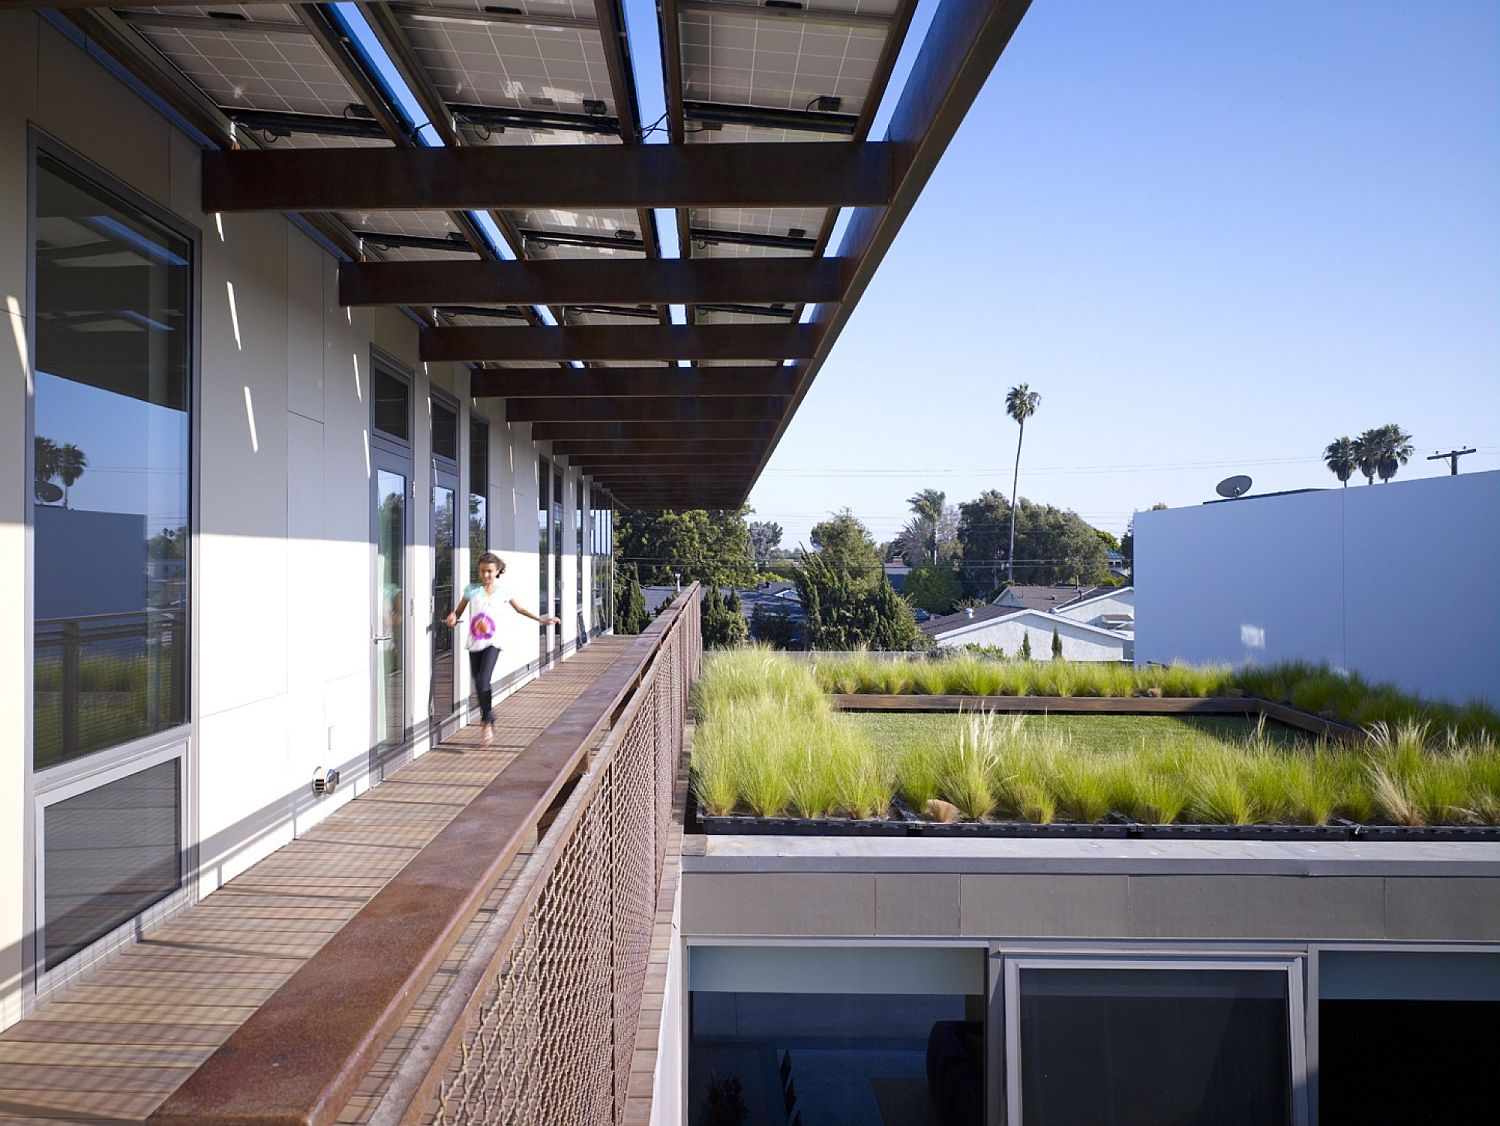 Series-of-courtyards-walkways-and-green-roof-add-breezy-cheer-to-the-Californian-home